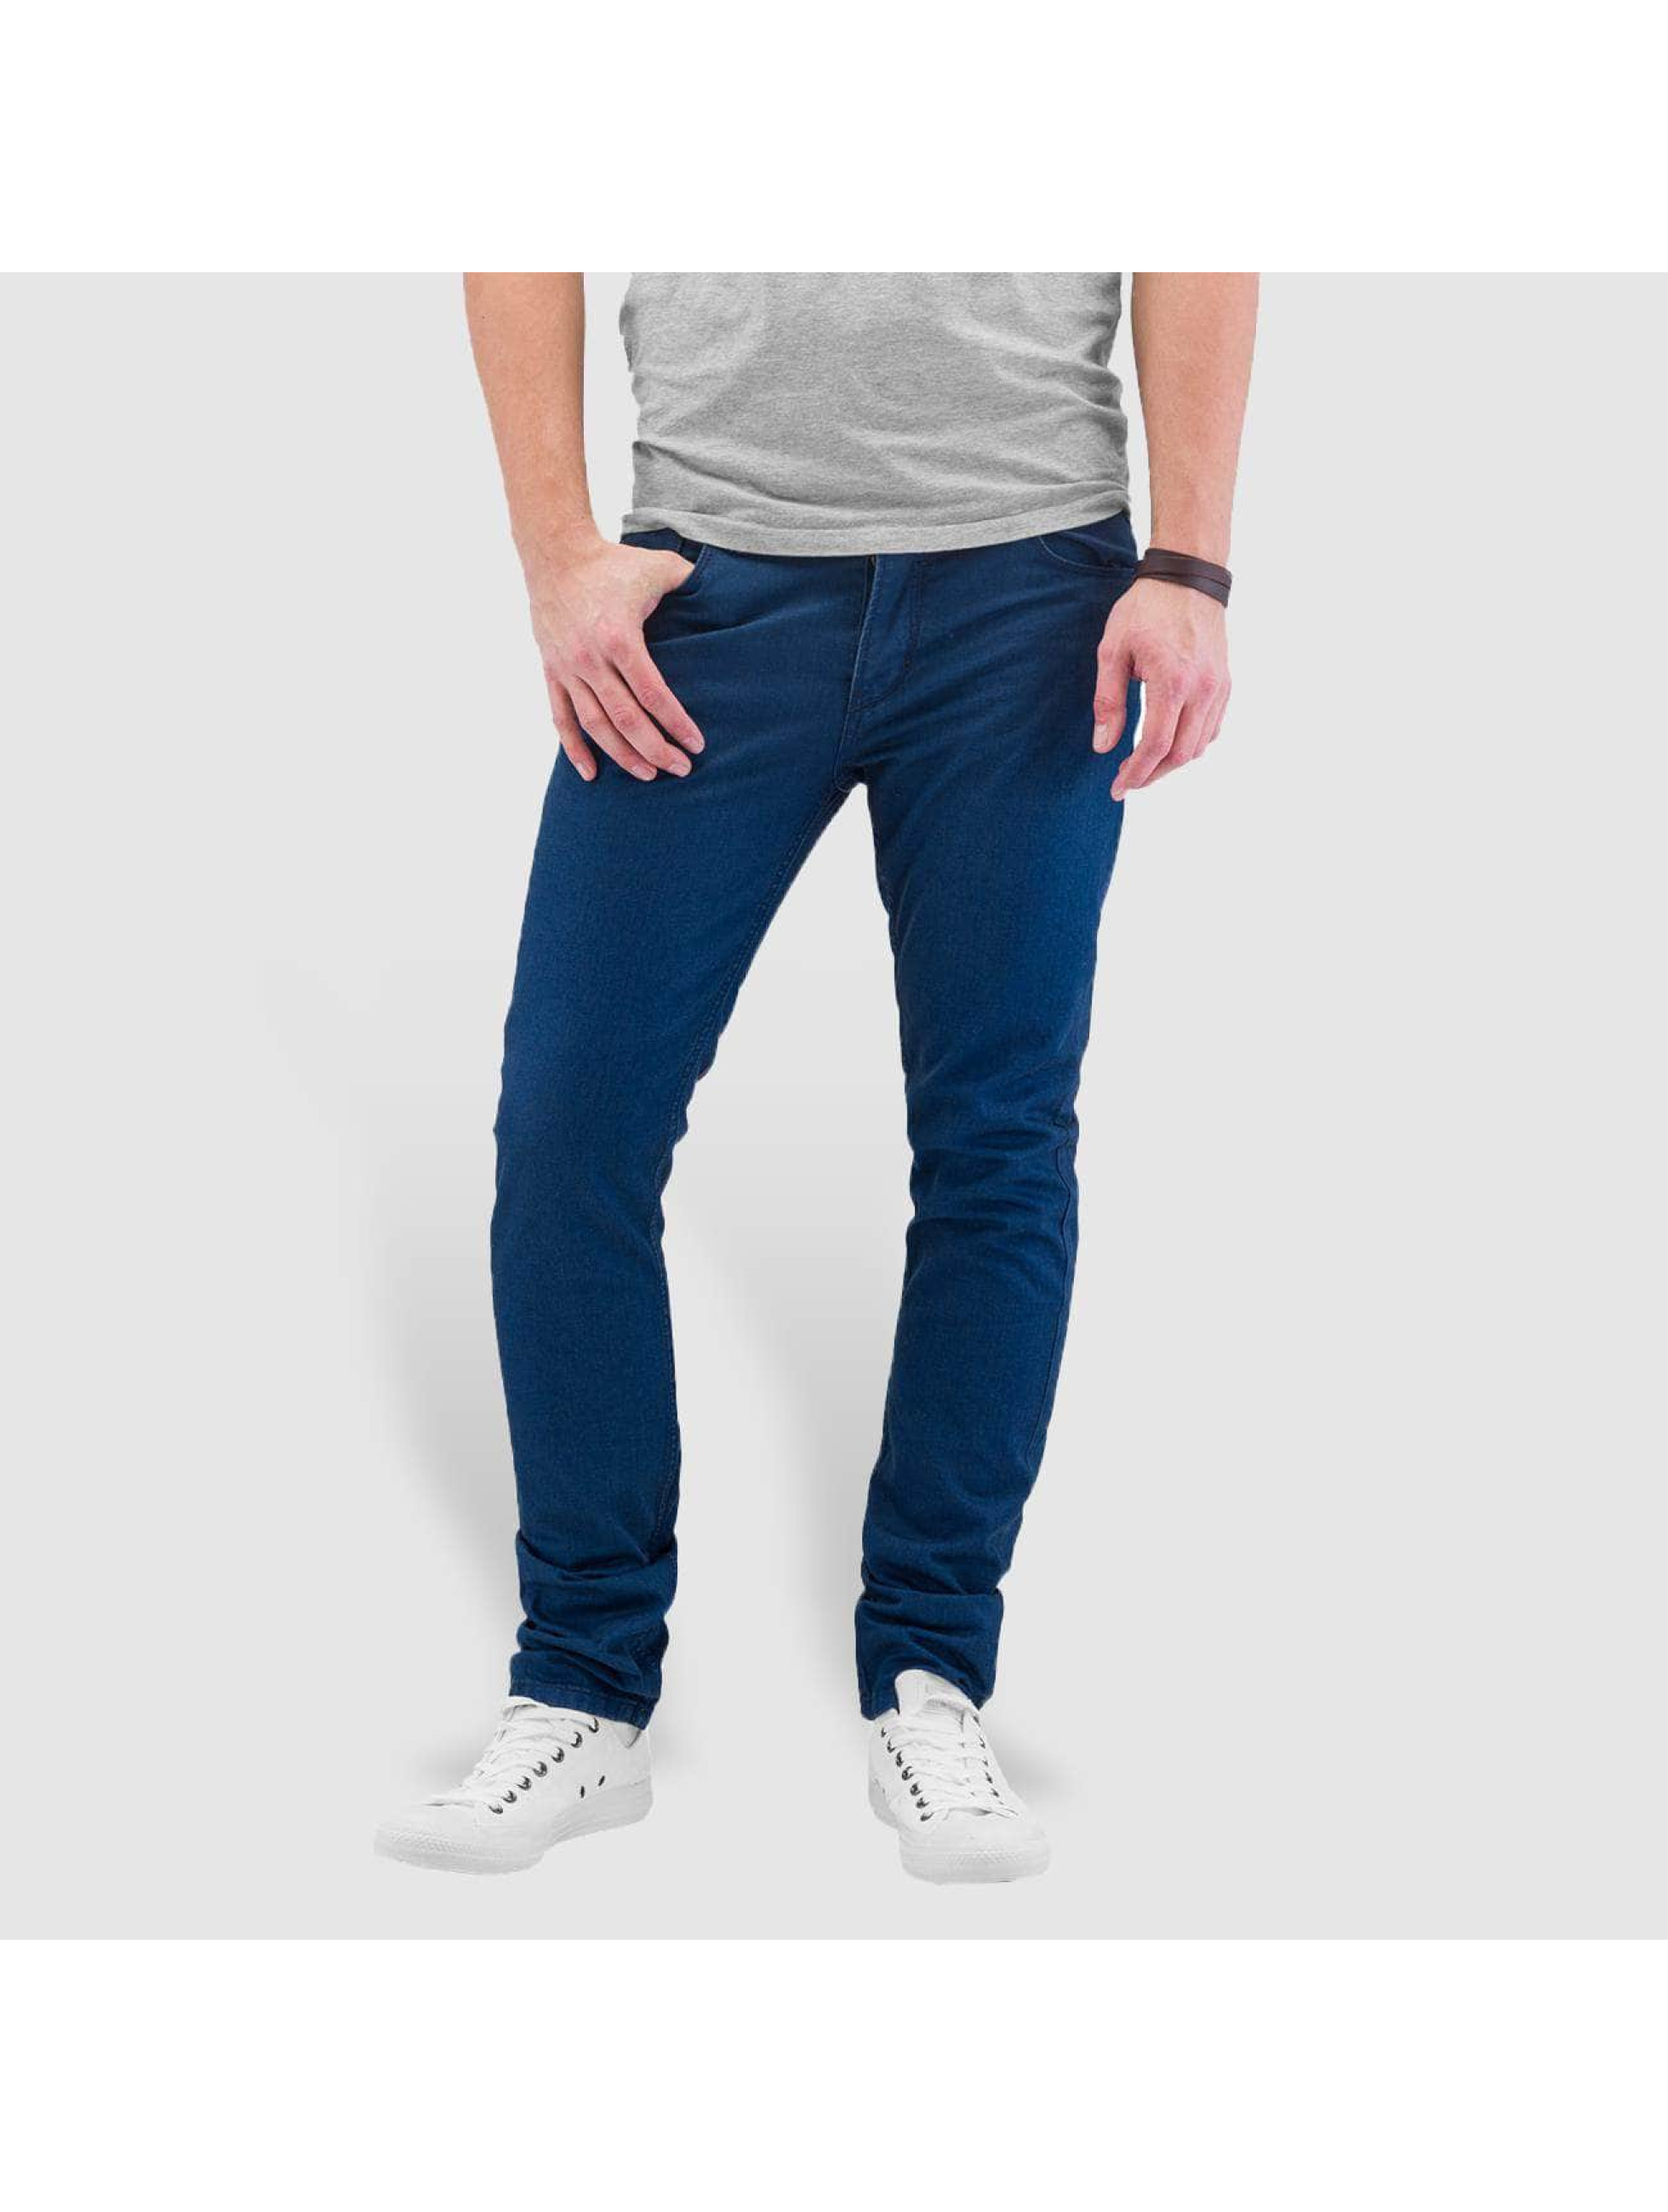 Cazzy Clang Männer Skinny Jeans Tone II in blau